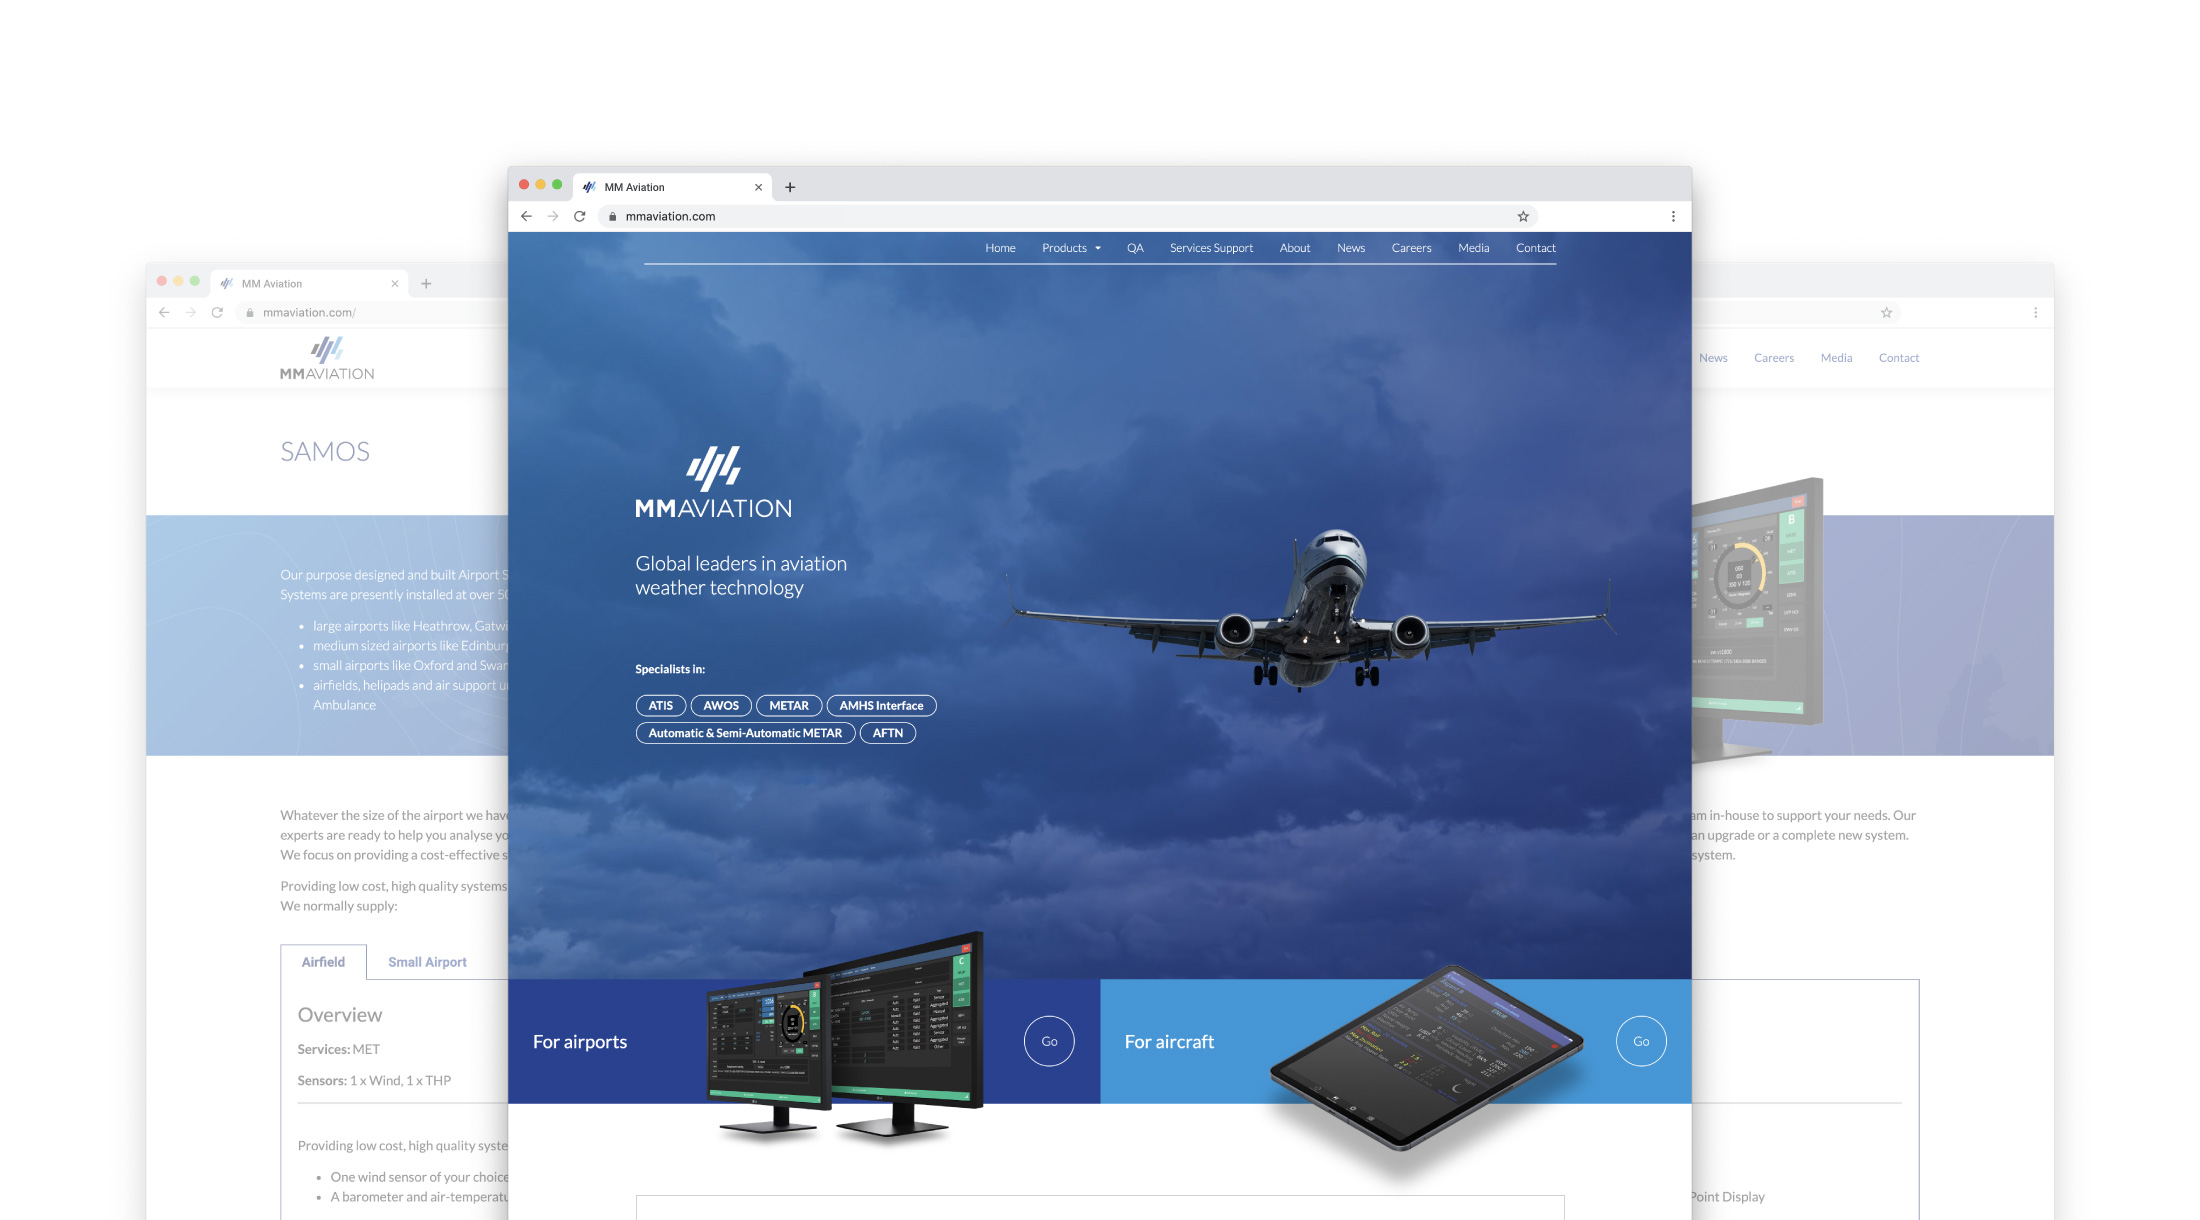 The MM Aviation site as seen on desktop